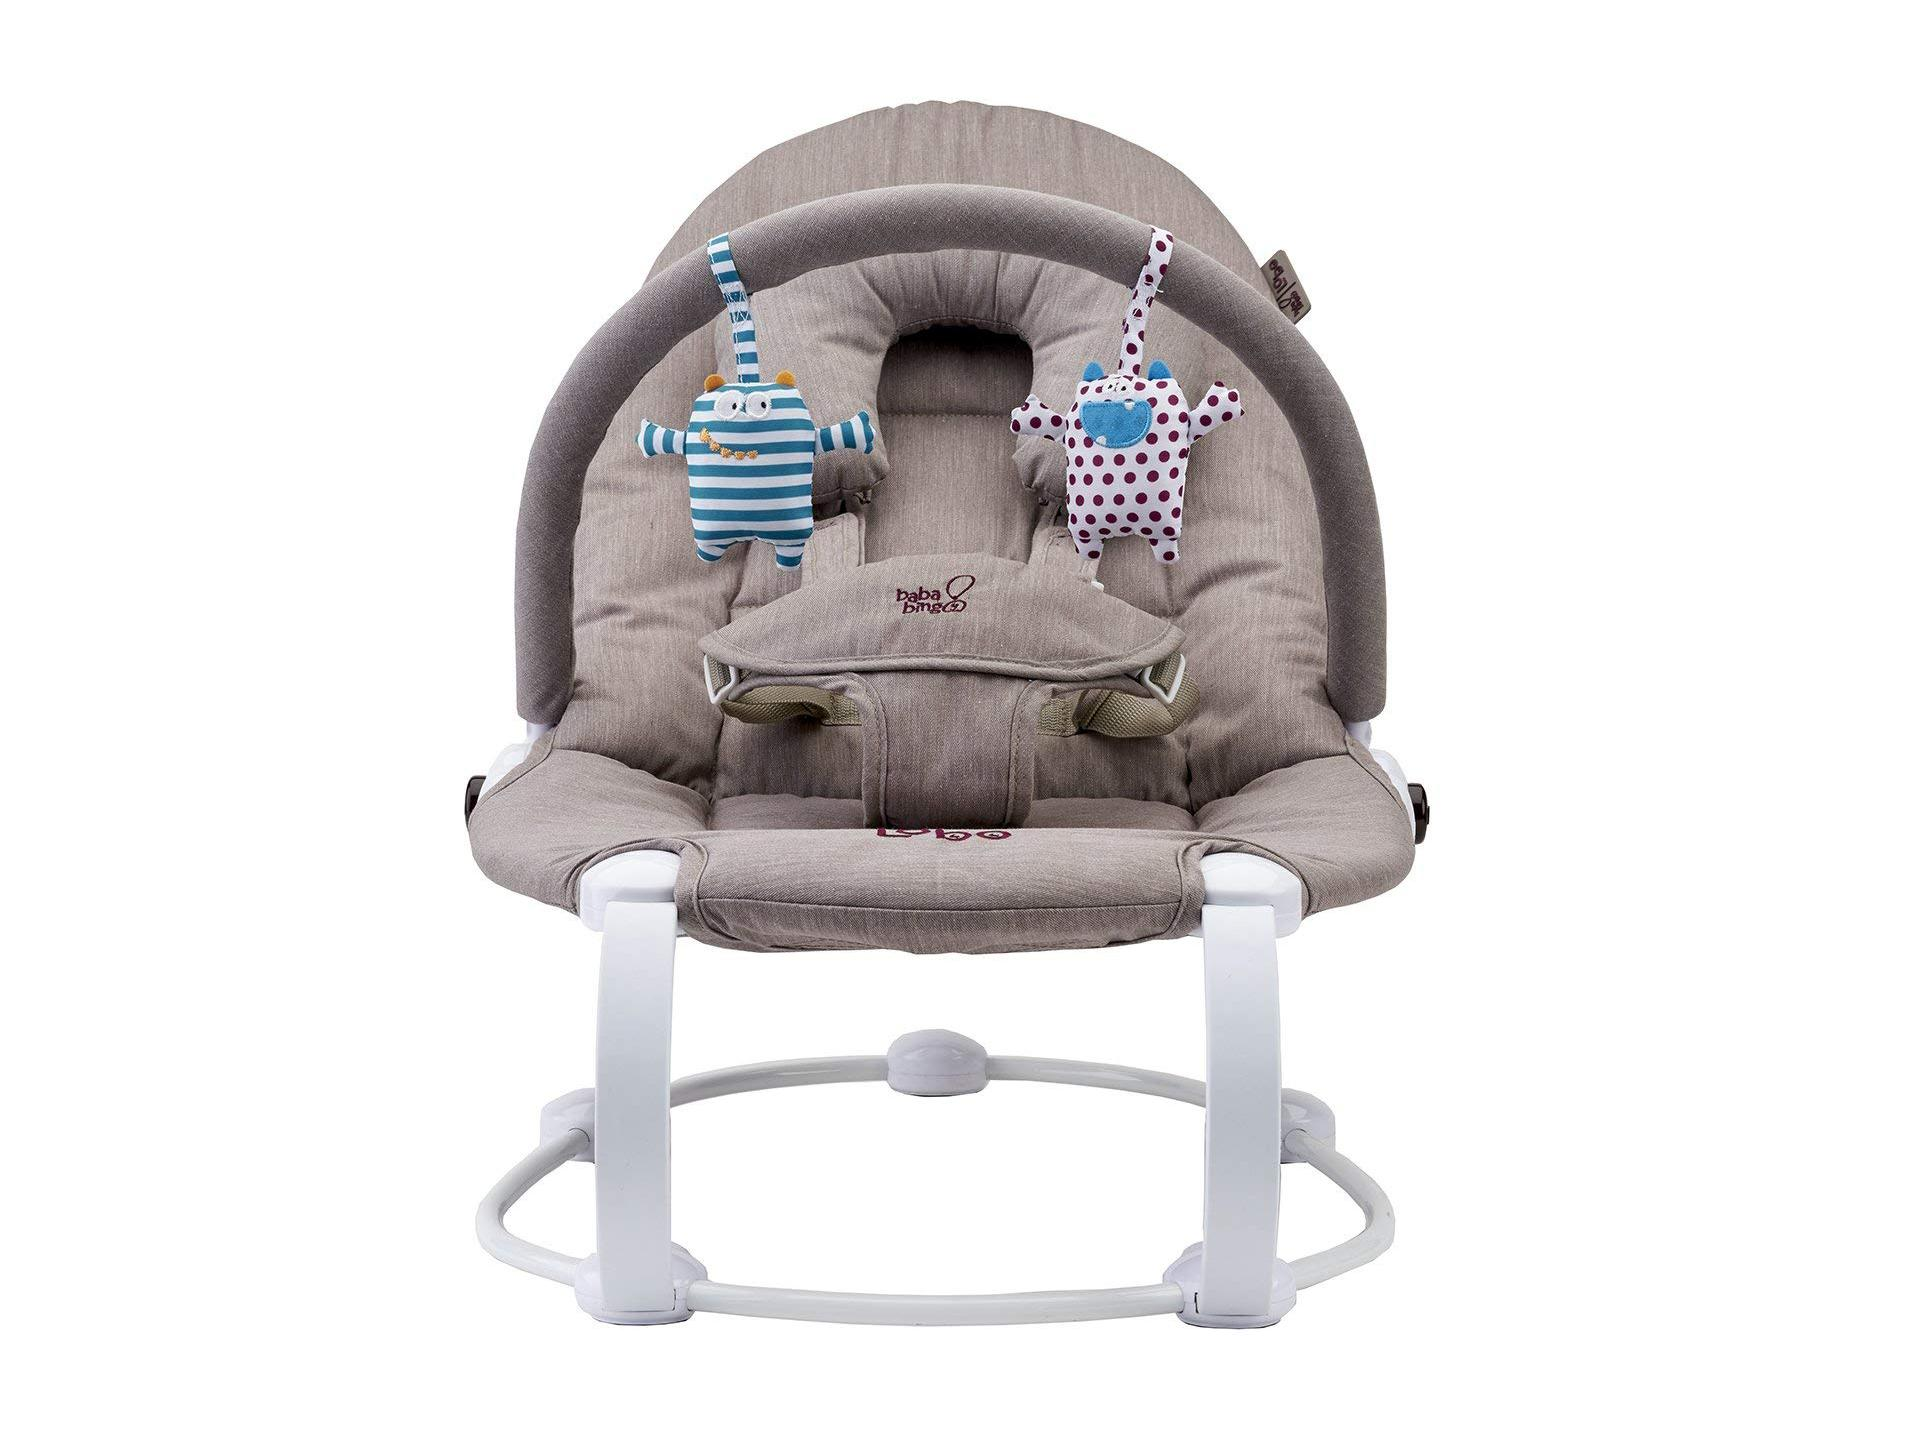 Prime 8 Best Baby Bouncers The Independent Download Free Architecture Designs Rallybritishbridgeorg